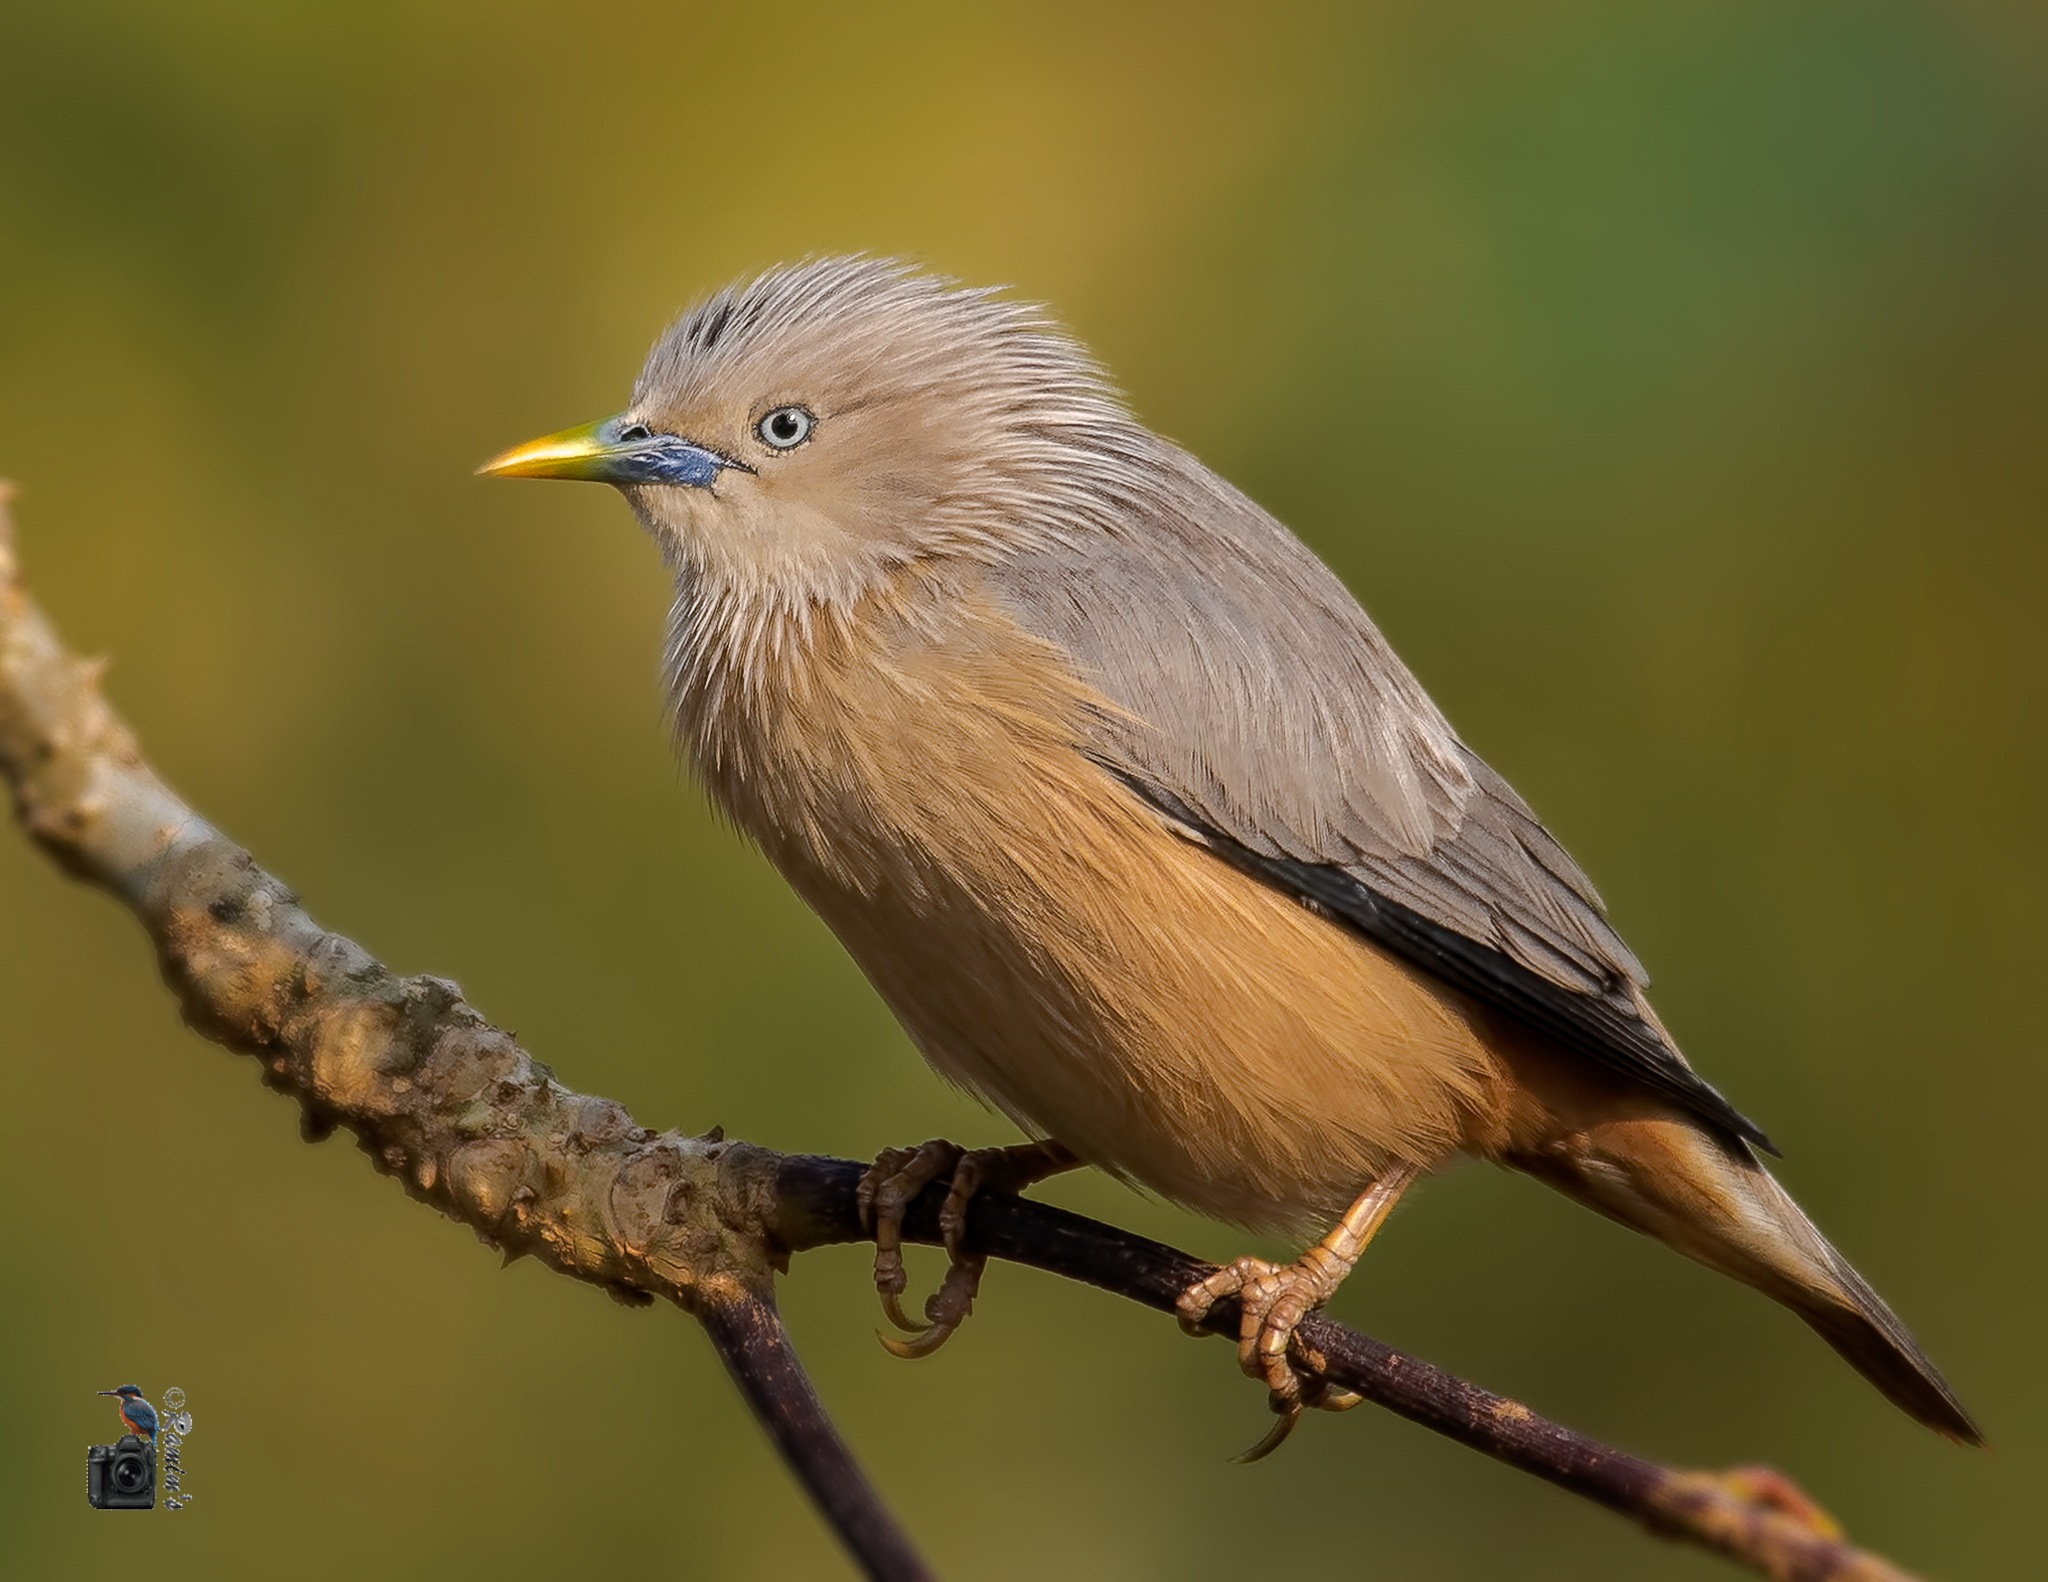 Chestnut-tailed Starling by Mohammad Shakiluzzaman